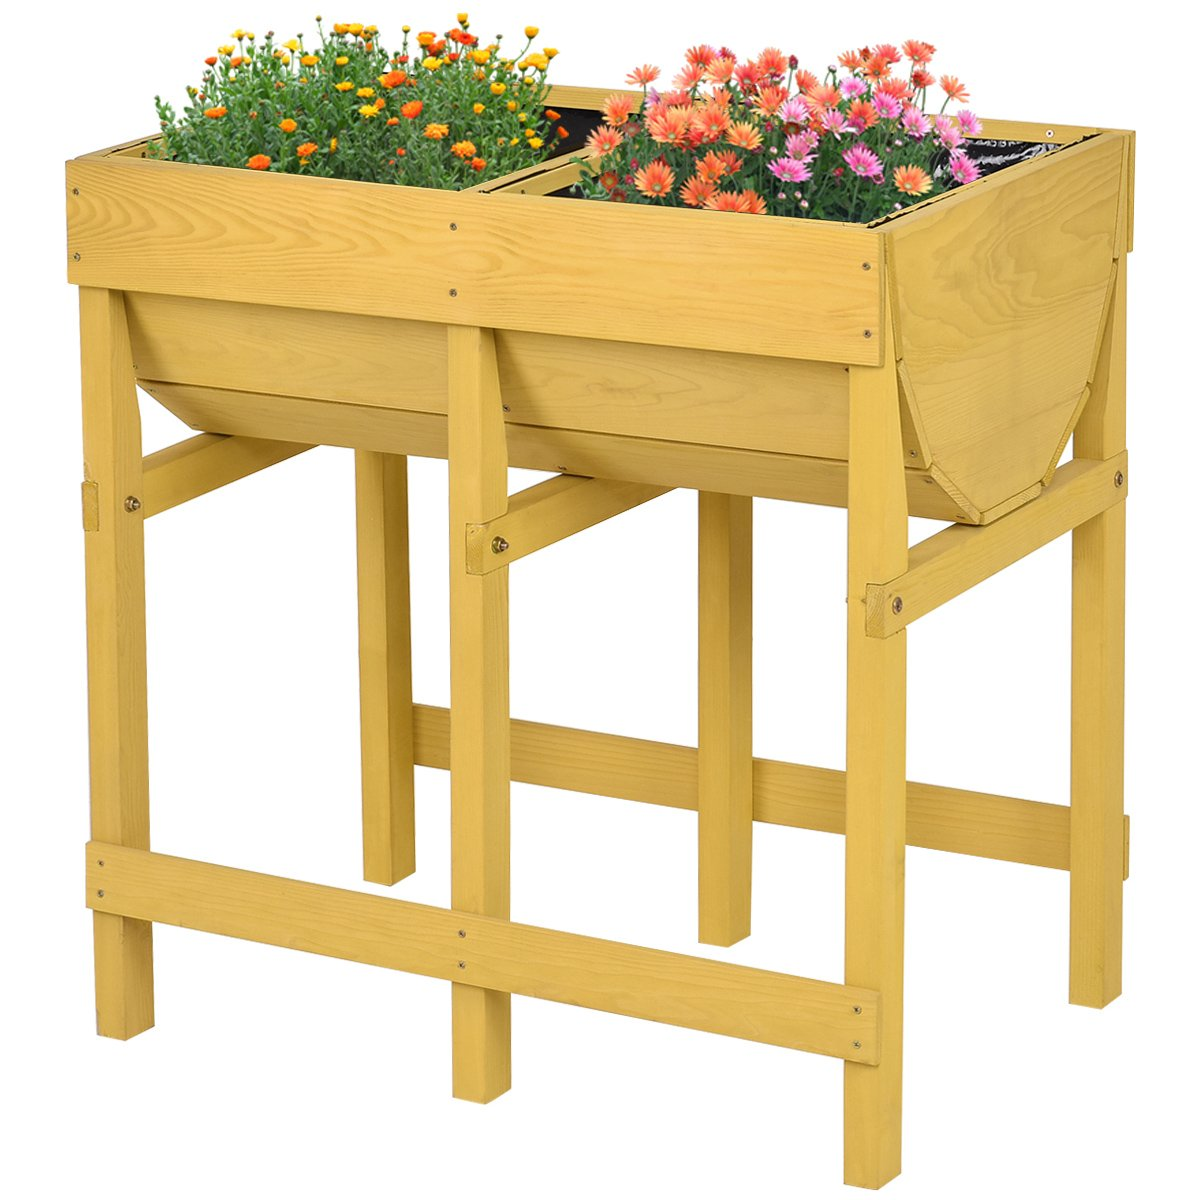 Giantex Raised Wooden V Planter Elevated Vegetable Flower Bed Free Standing Planting Container with Black Liner(Tawny V Planter) by Giantex